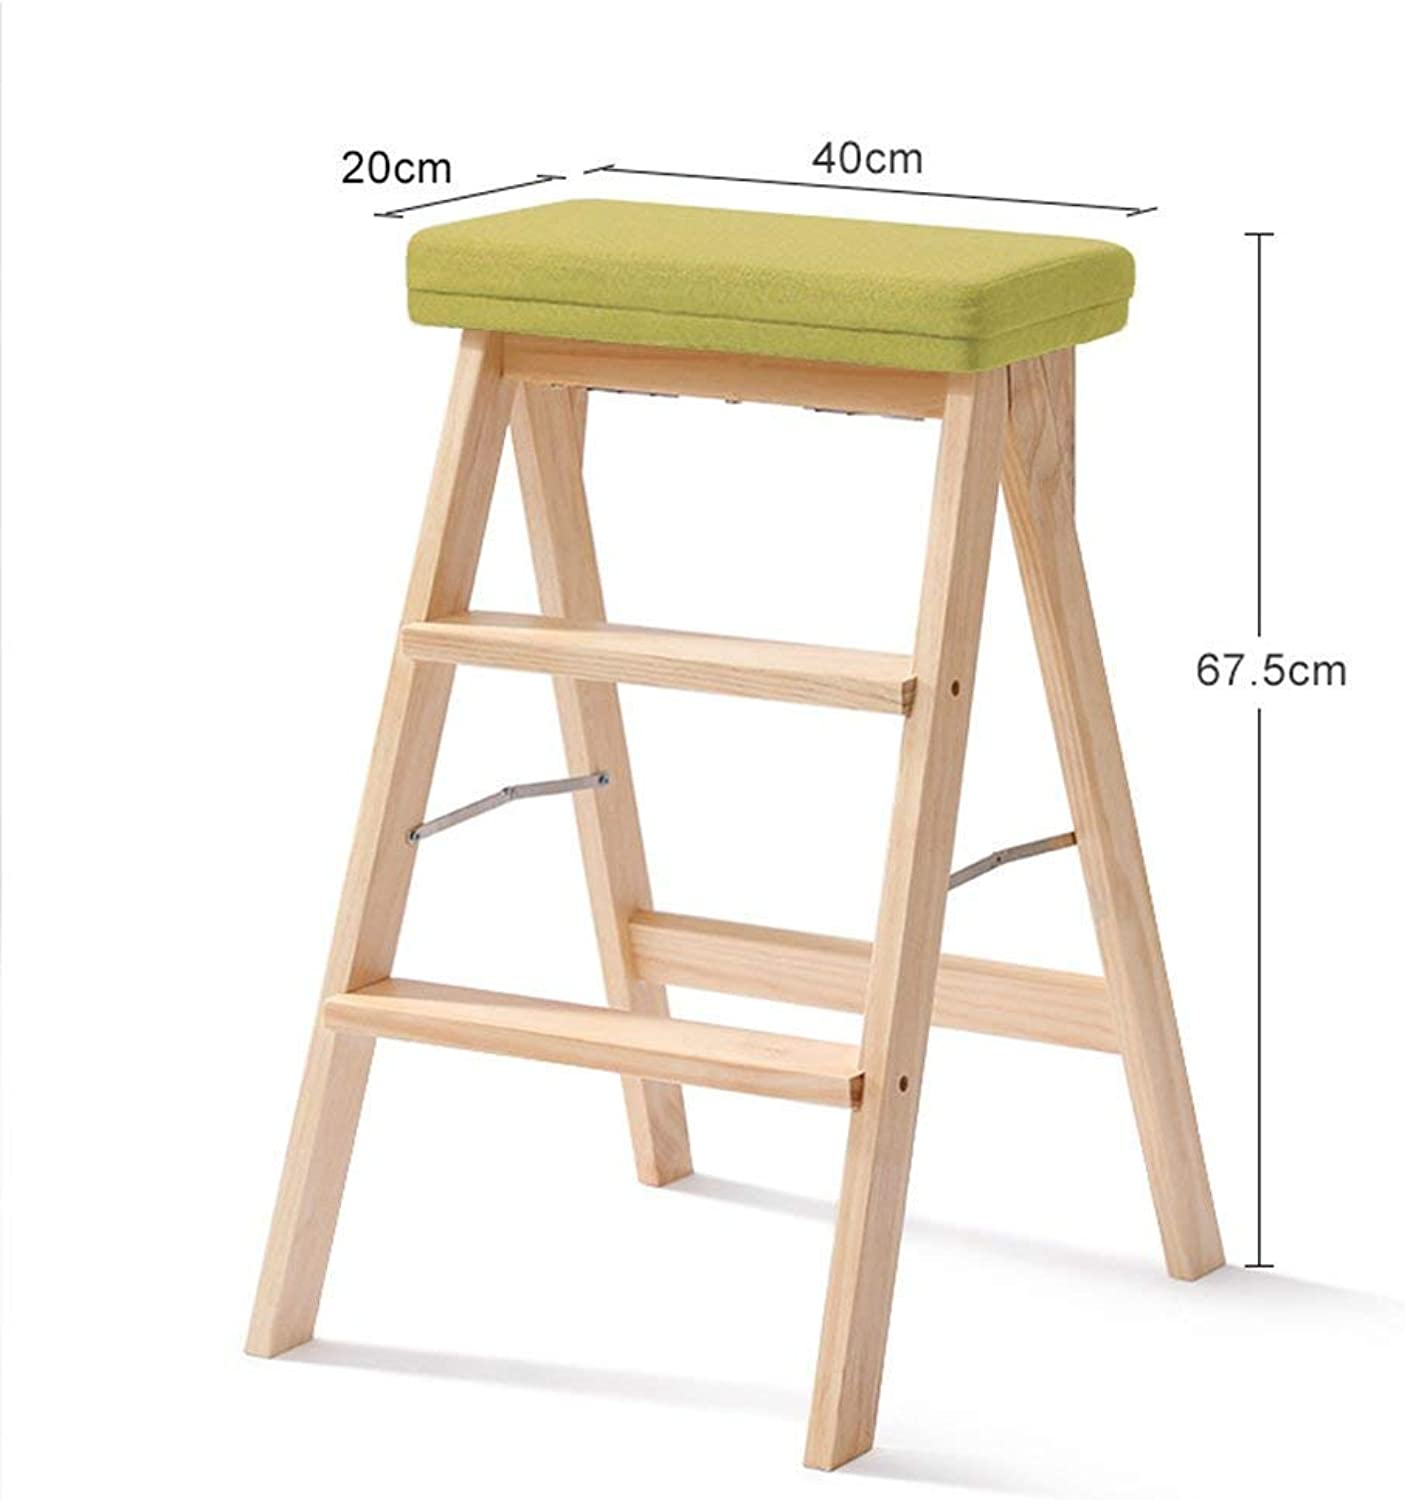 D-Z Chair Stool Ladder Step Stool Kitchen Portable Footstool Solid Wood Multipurpose Folding Step Stool, Stool 2, a